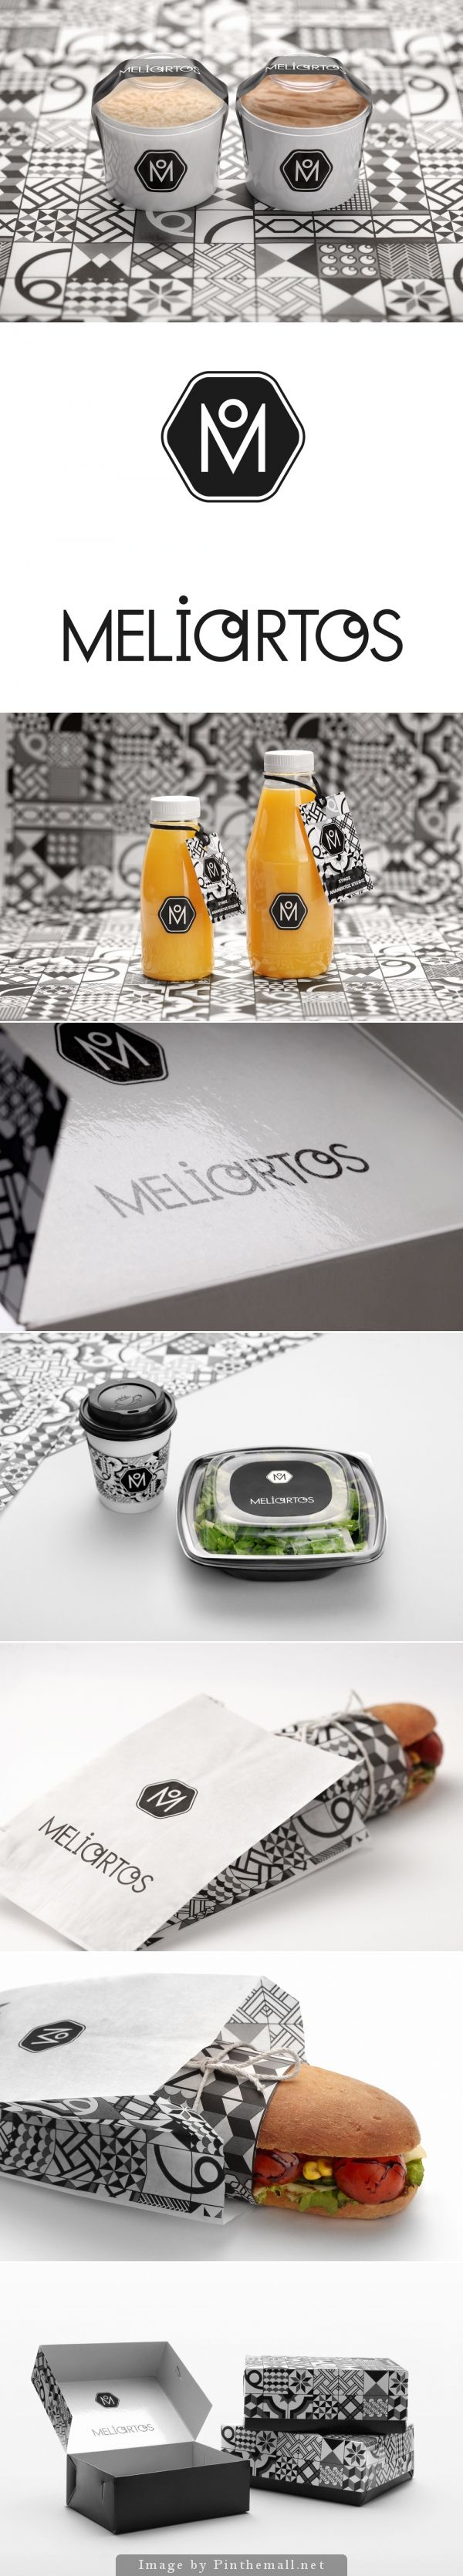 Meliartos are you hungry yet #packaging curated by Packaging Diva PD - created via http://www.thedieline.com/blog/2014/6/10/meliartos